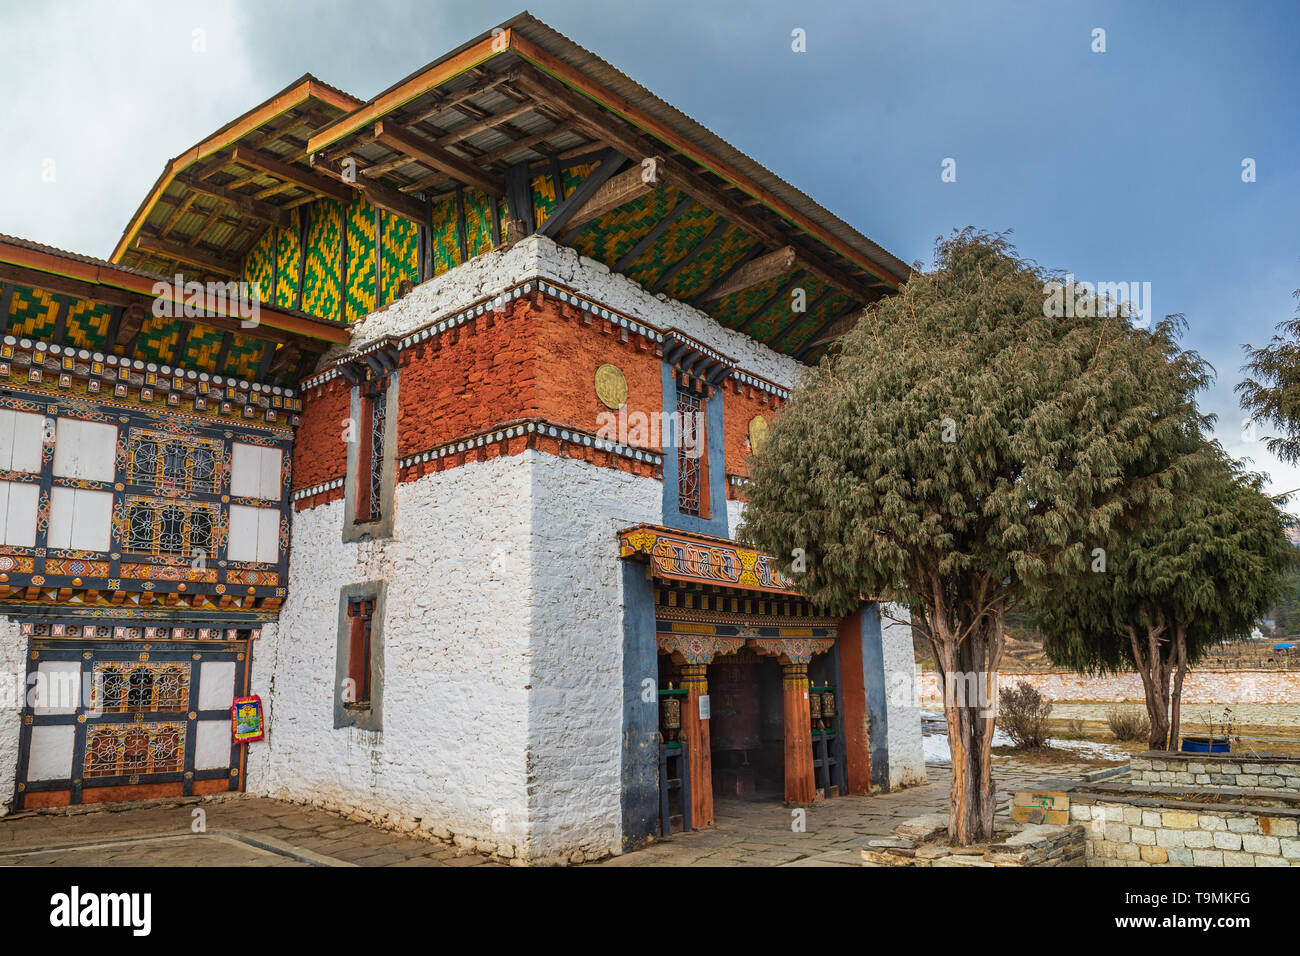 The Jampey Lhakhang temple in Bumthang, Bhutan is from the 7th century - Stock Image